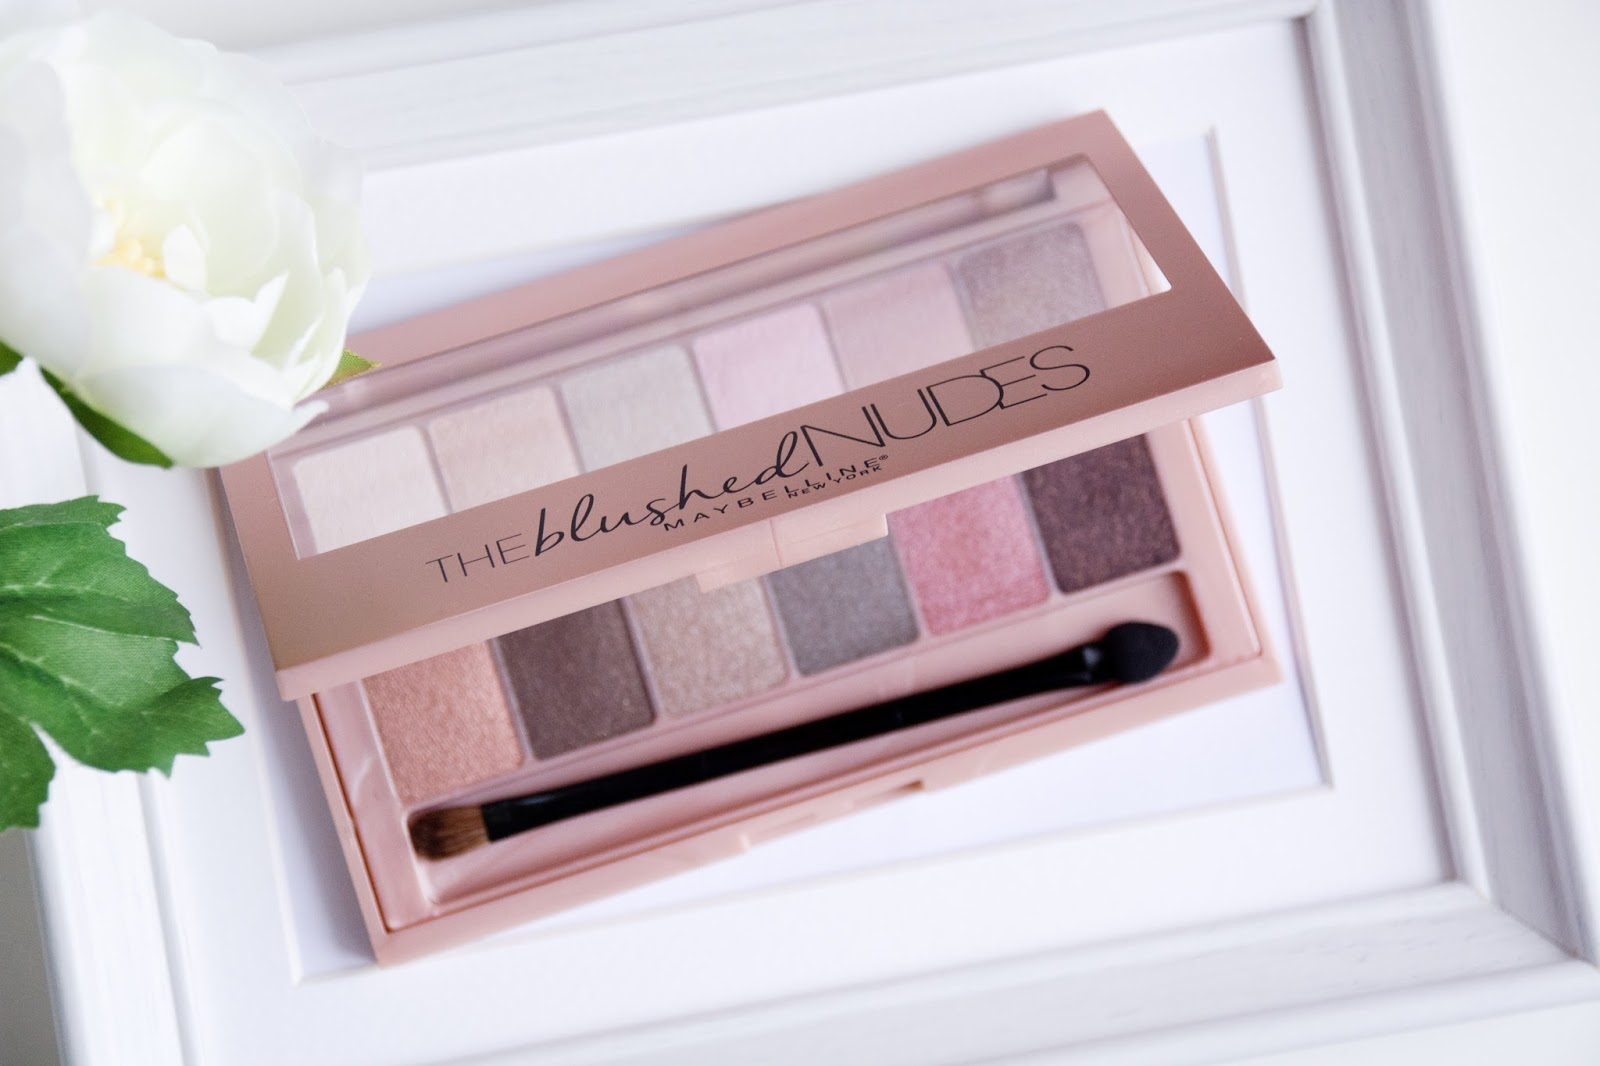 Maybelline The Blushed Nudes makeup